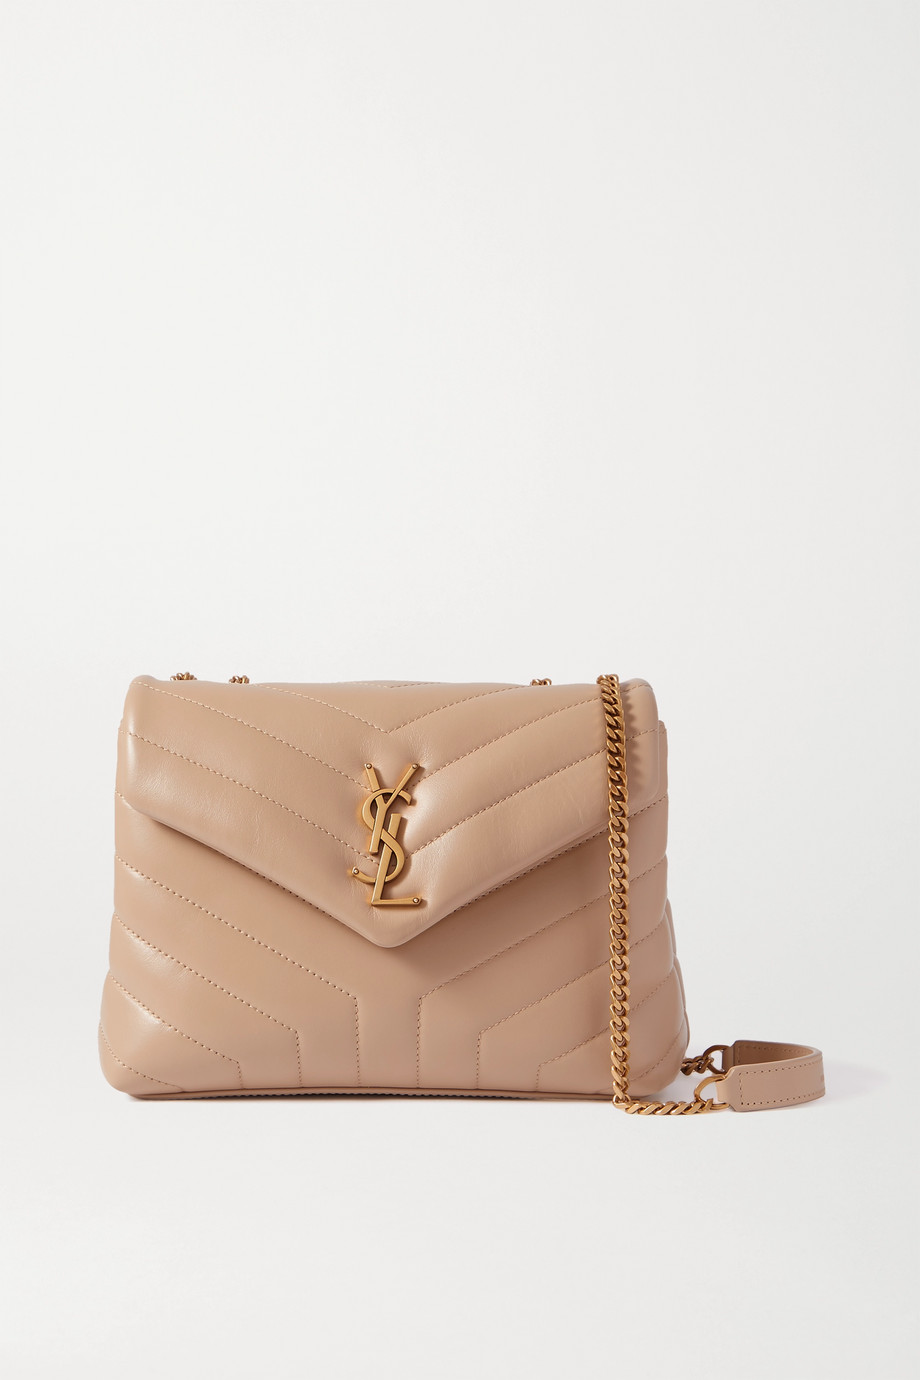 SAINT LAURENT Loulou small quilted leather shoulder bag